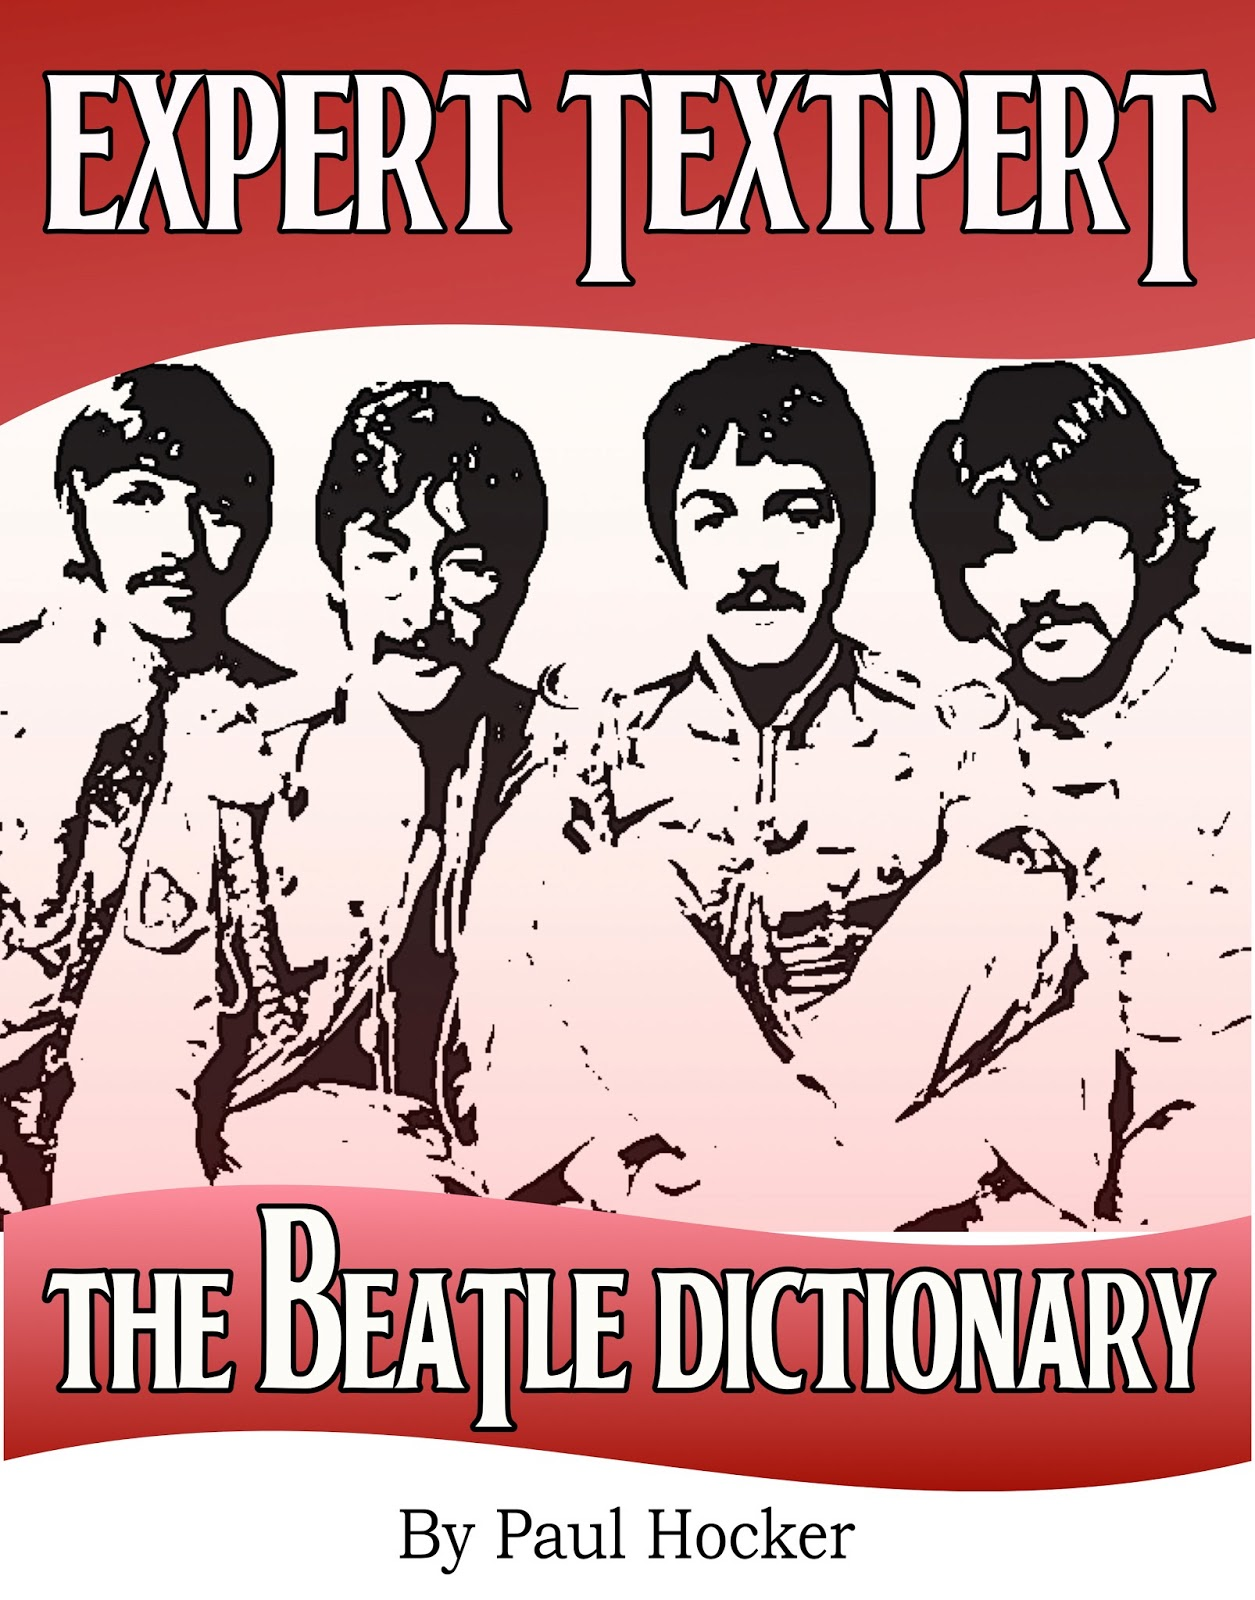 Expert Textpert: The Beatle Dictionary